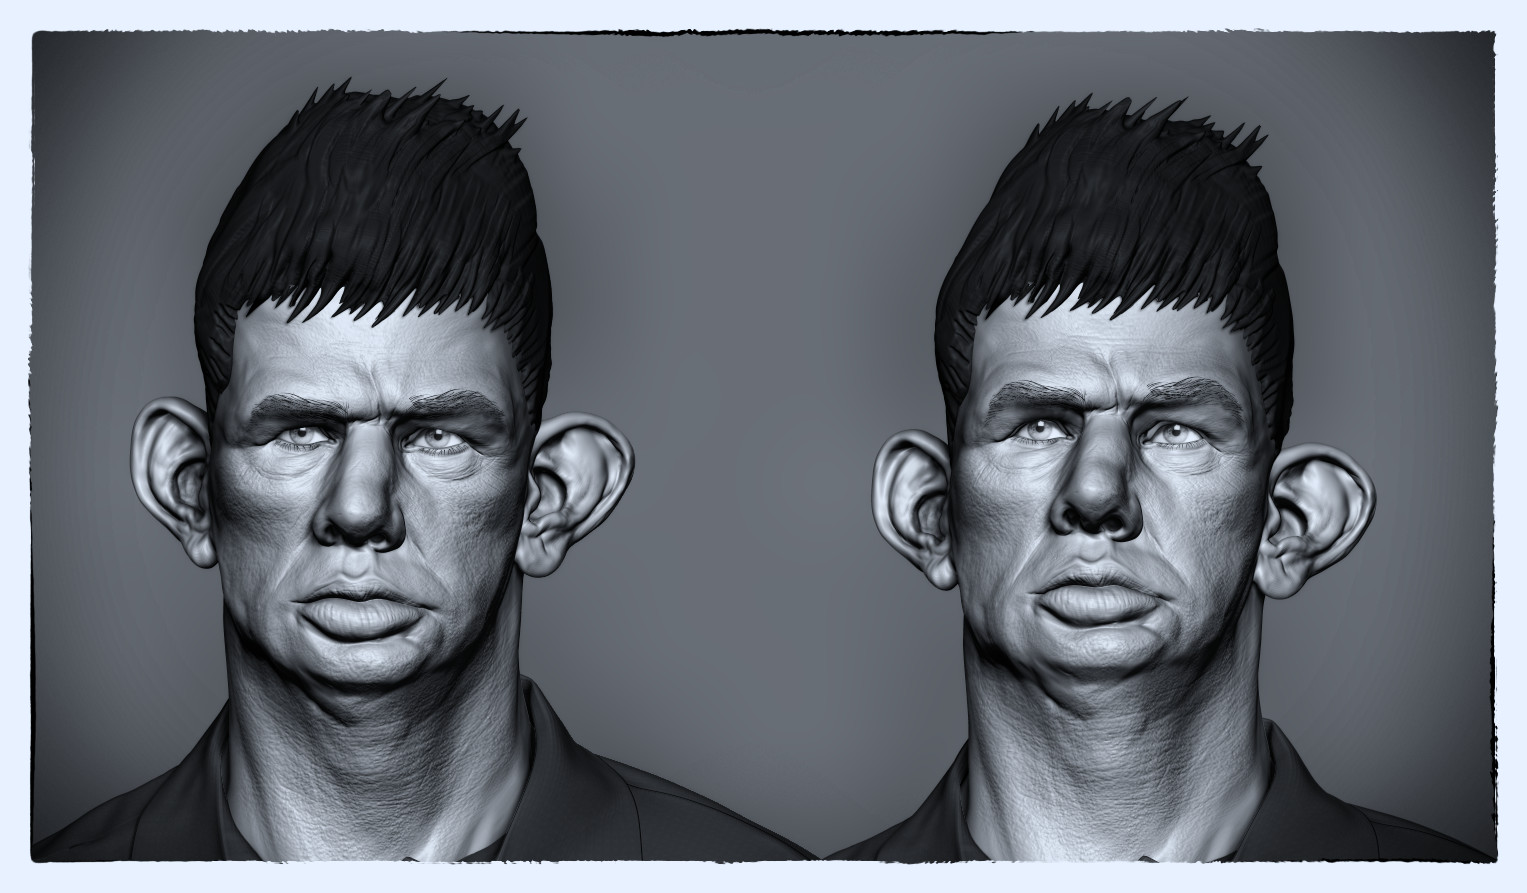 WIP 3D Sculpt of Dresie et Casie, Twins, by Roger Ballen